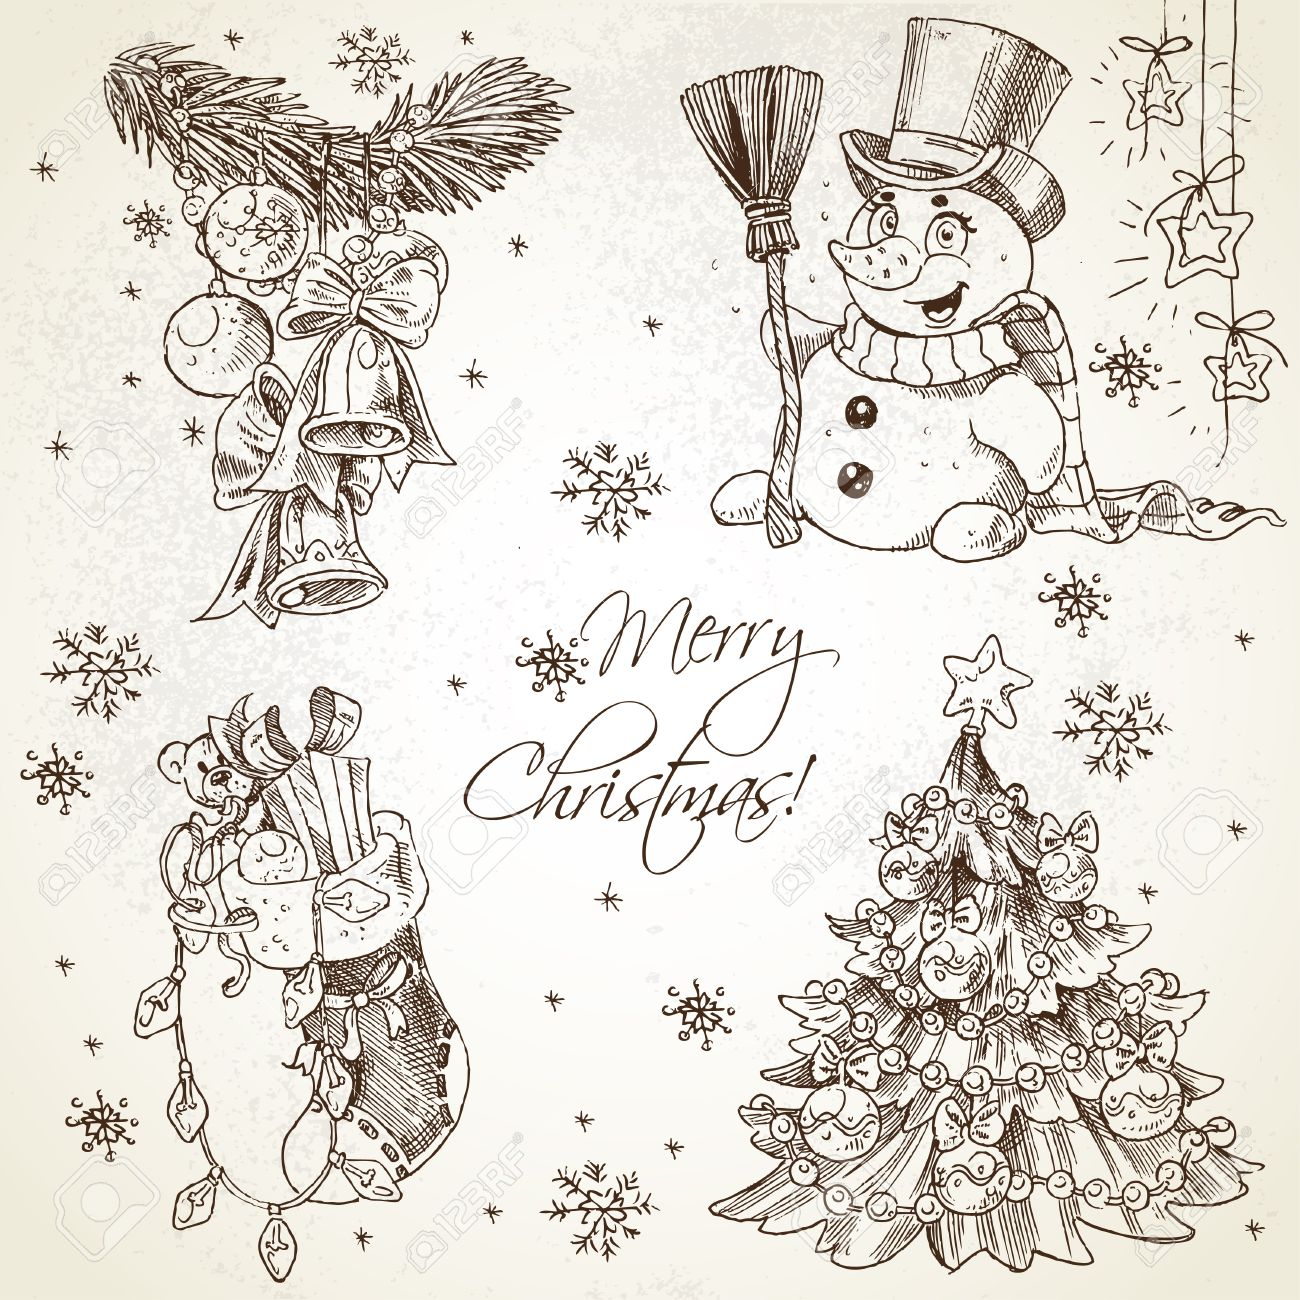 1300x1300 Merry Christmas Vintage Sketch Draw Set Royalty Free Cliparts